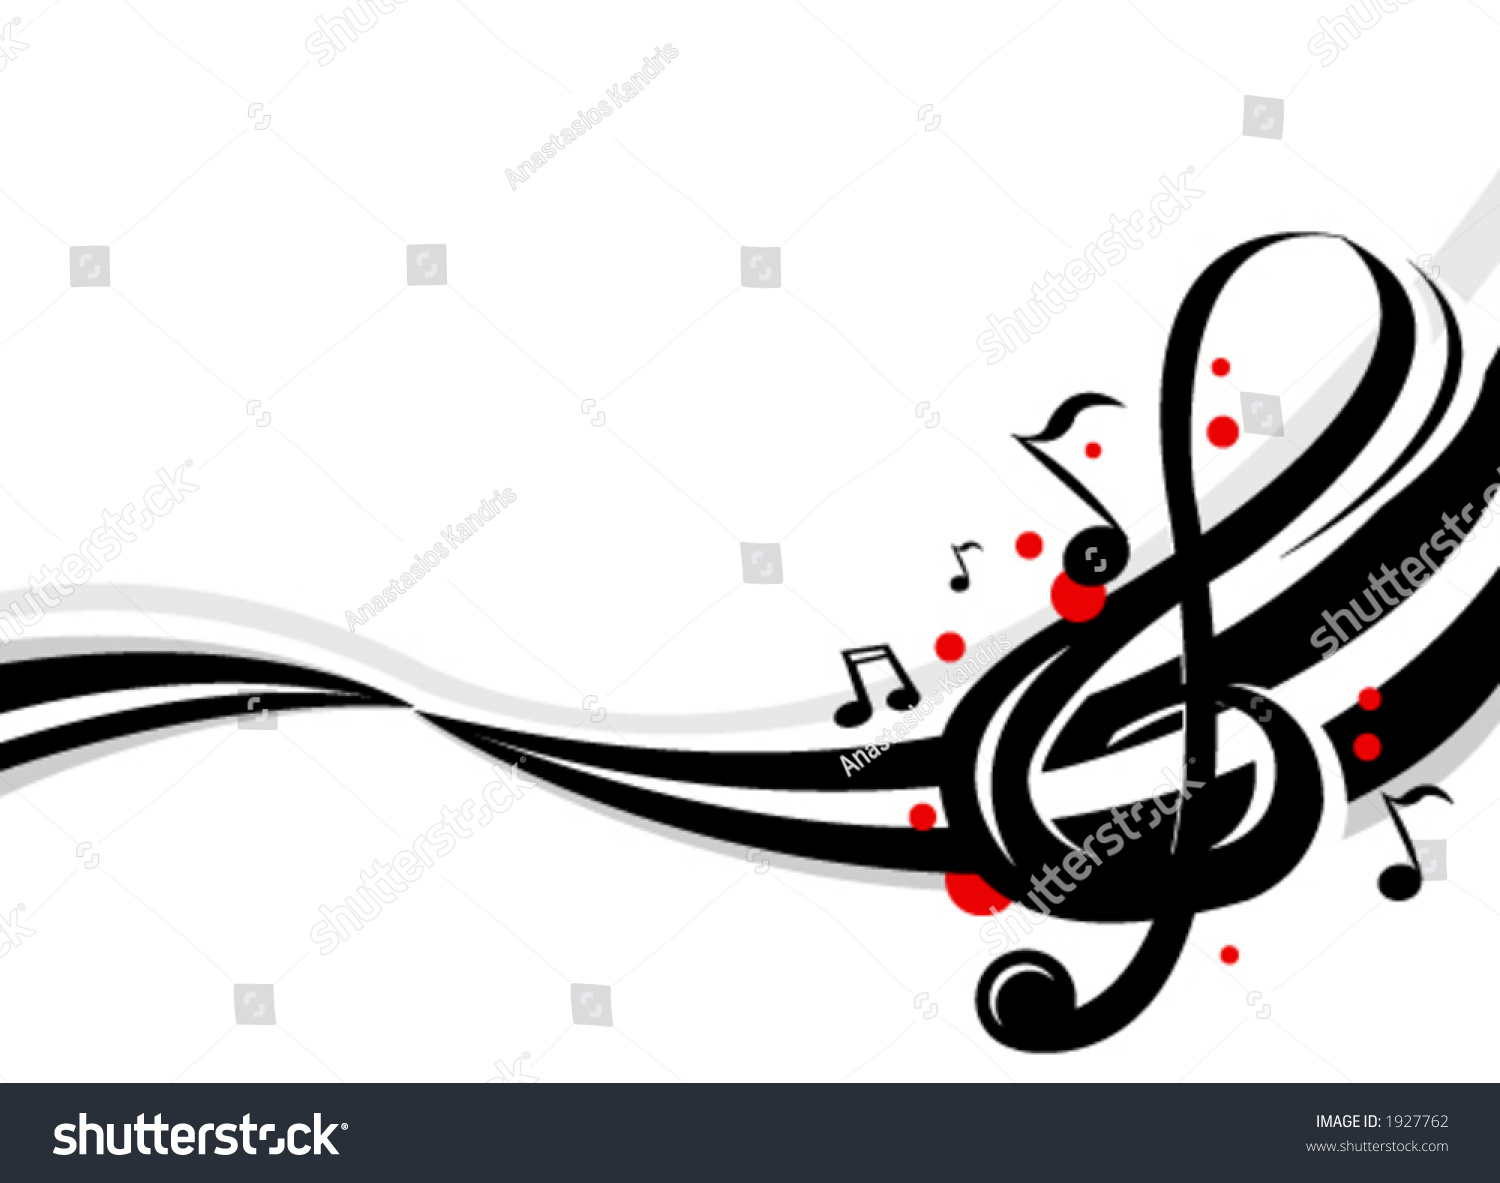 stylish design music notes stock vector 1927762 shutterstock